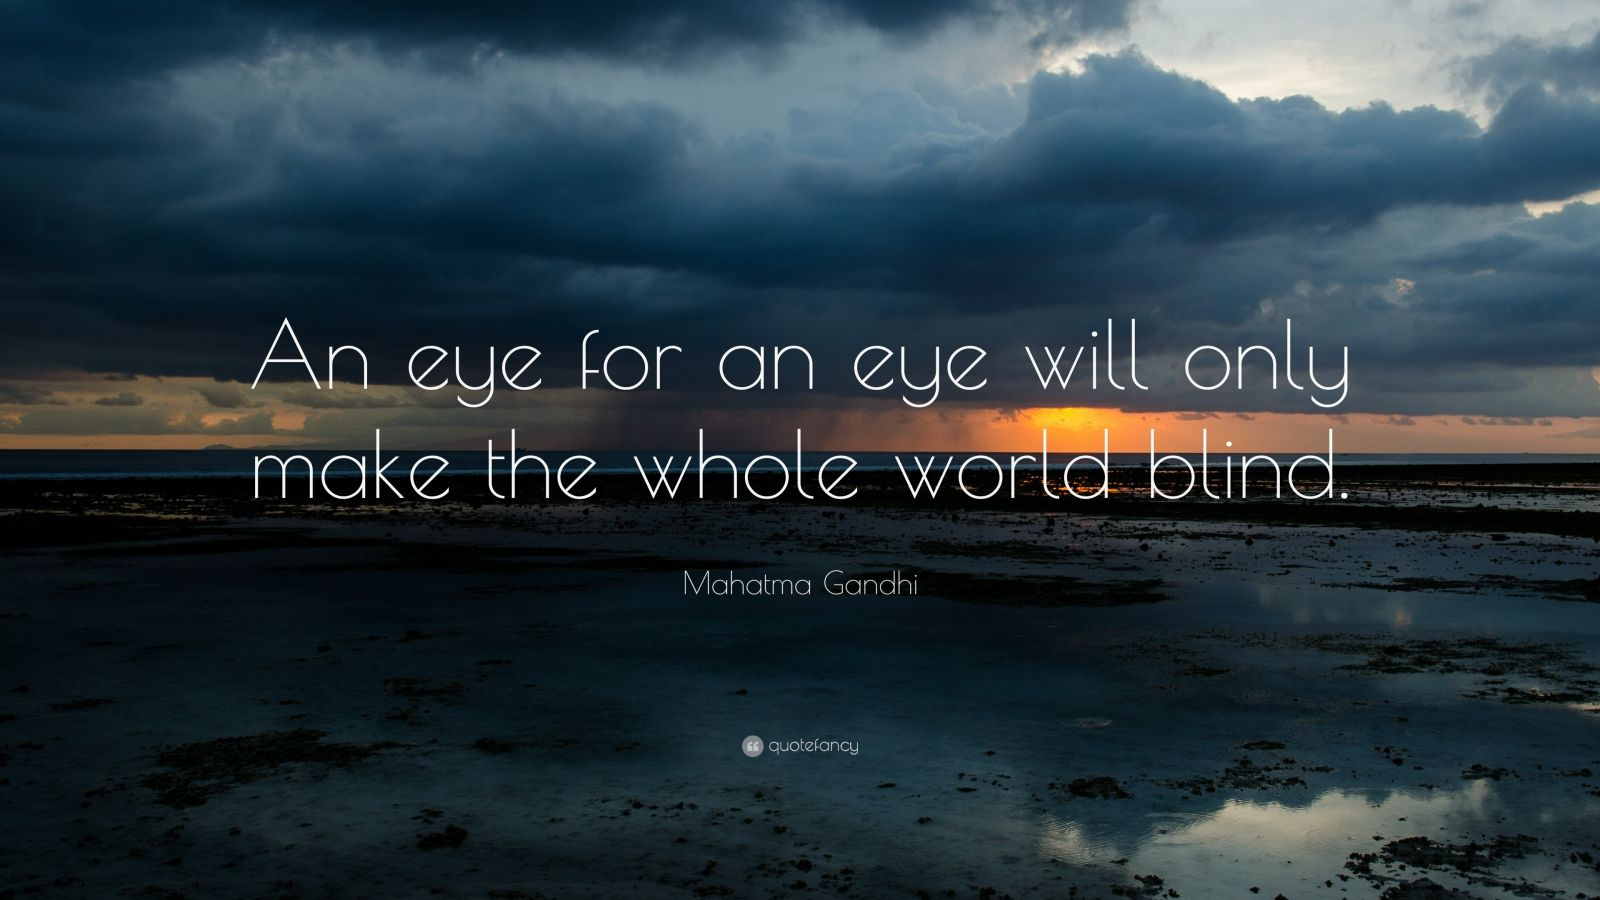 Mahatma Gandhi Wallpaper With Quotes Mahatma Gandhi Quote An Eye For An Eye Will Only Make